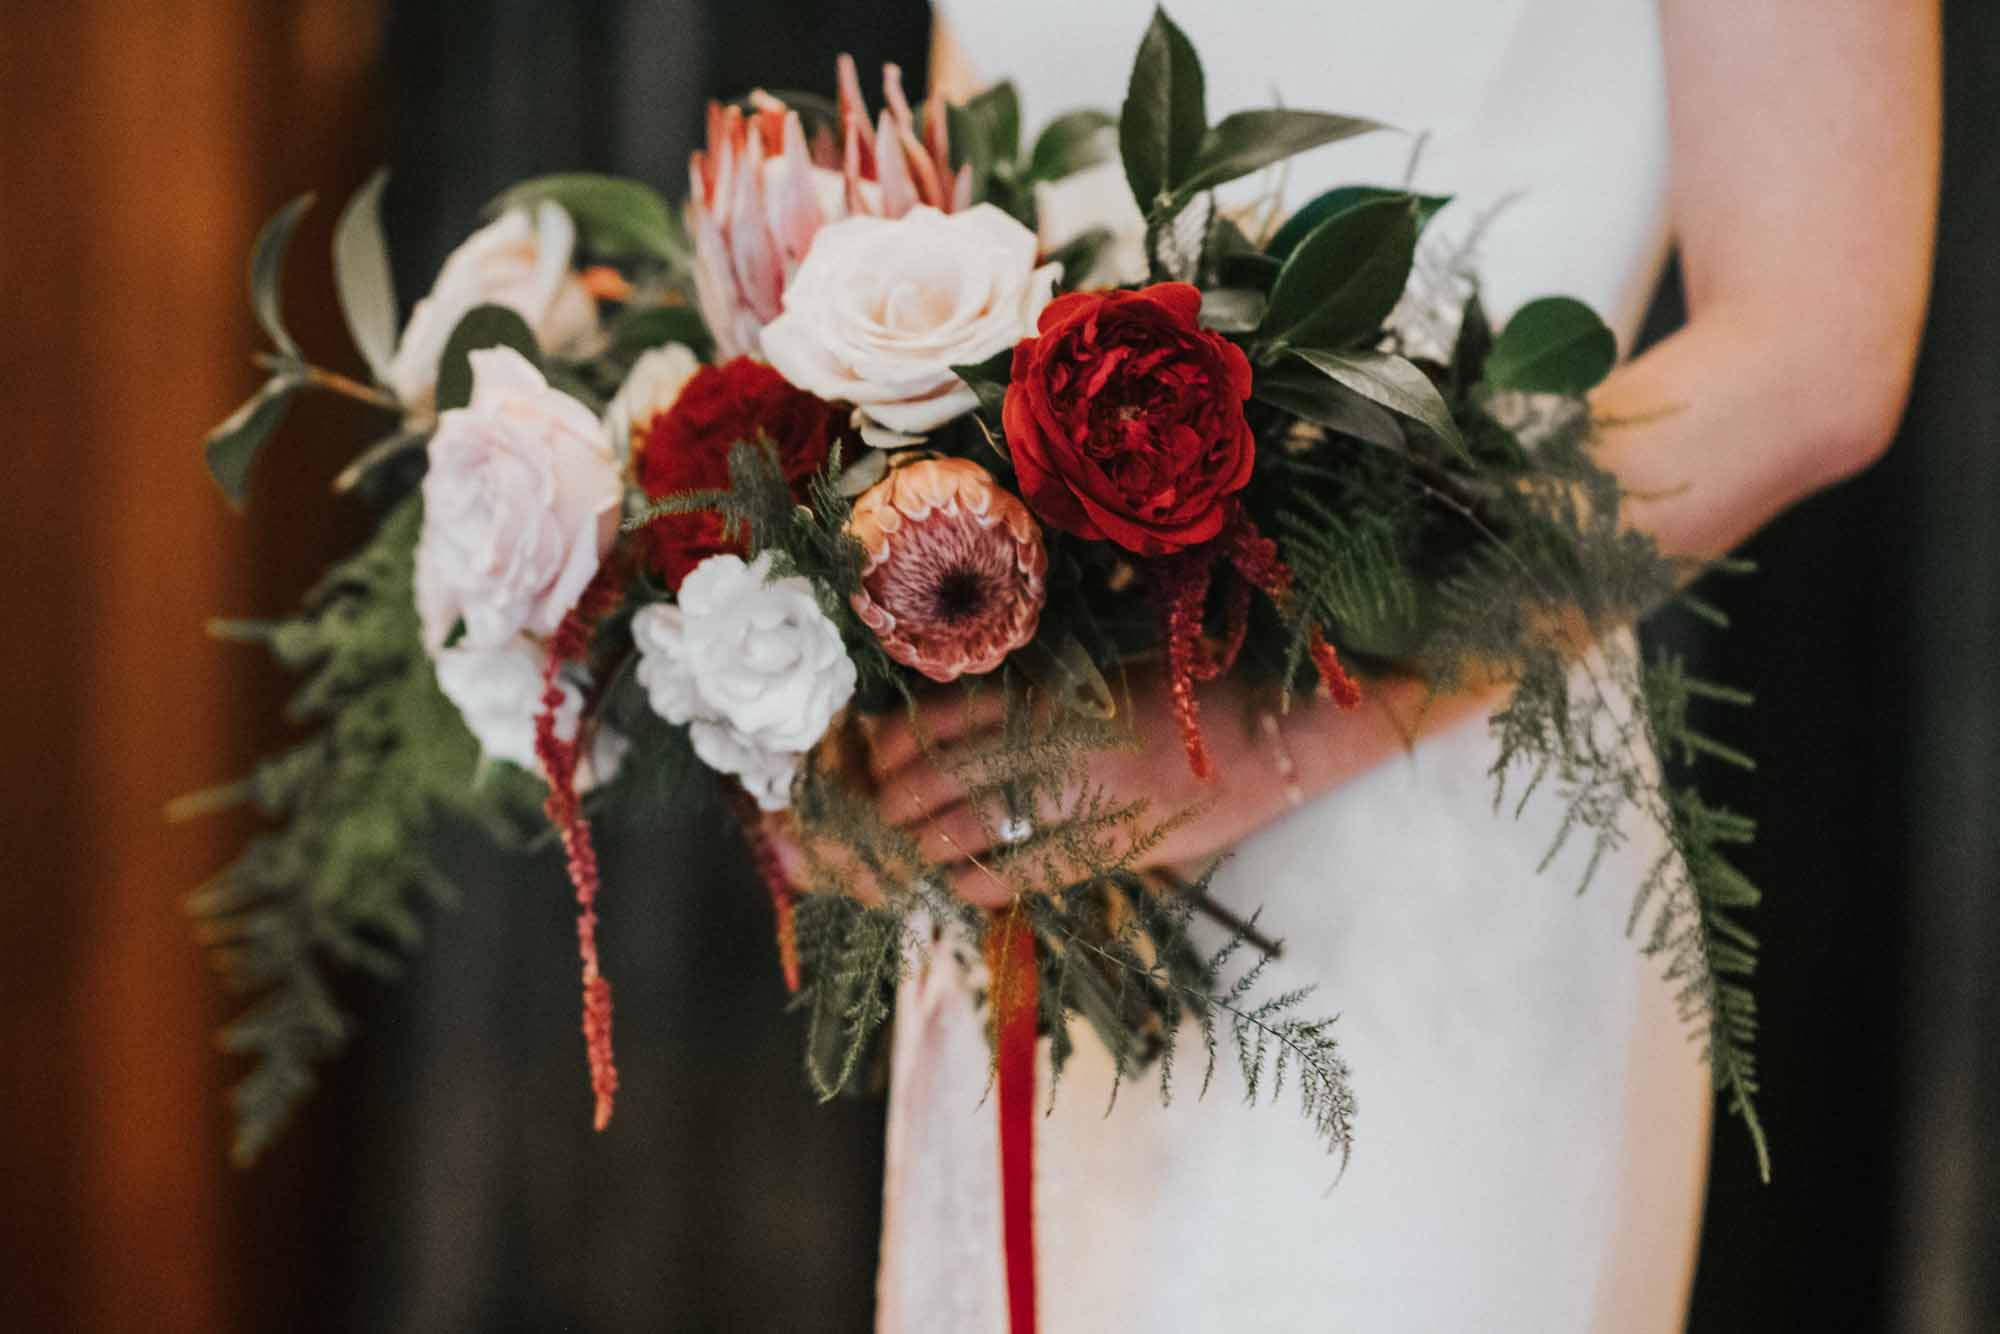 cozy winter wedding bouquet with protea, roses, amaranthus, and greens